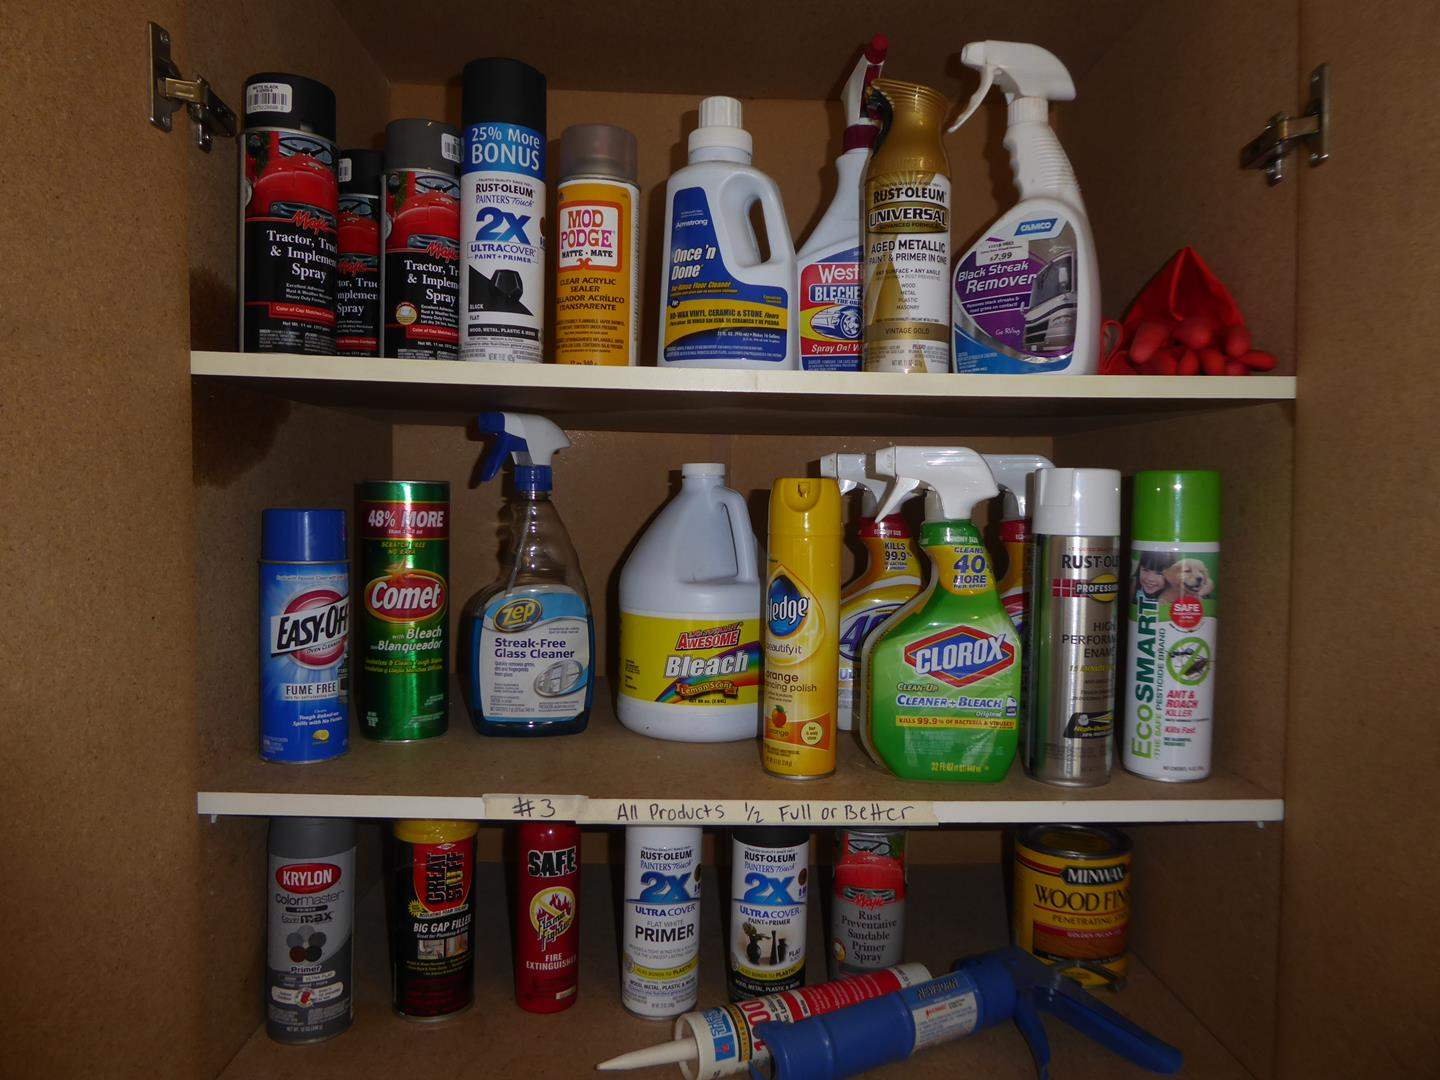 Lot # 3 - Household & Garage Products (Half Full or Better) (main image)